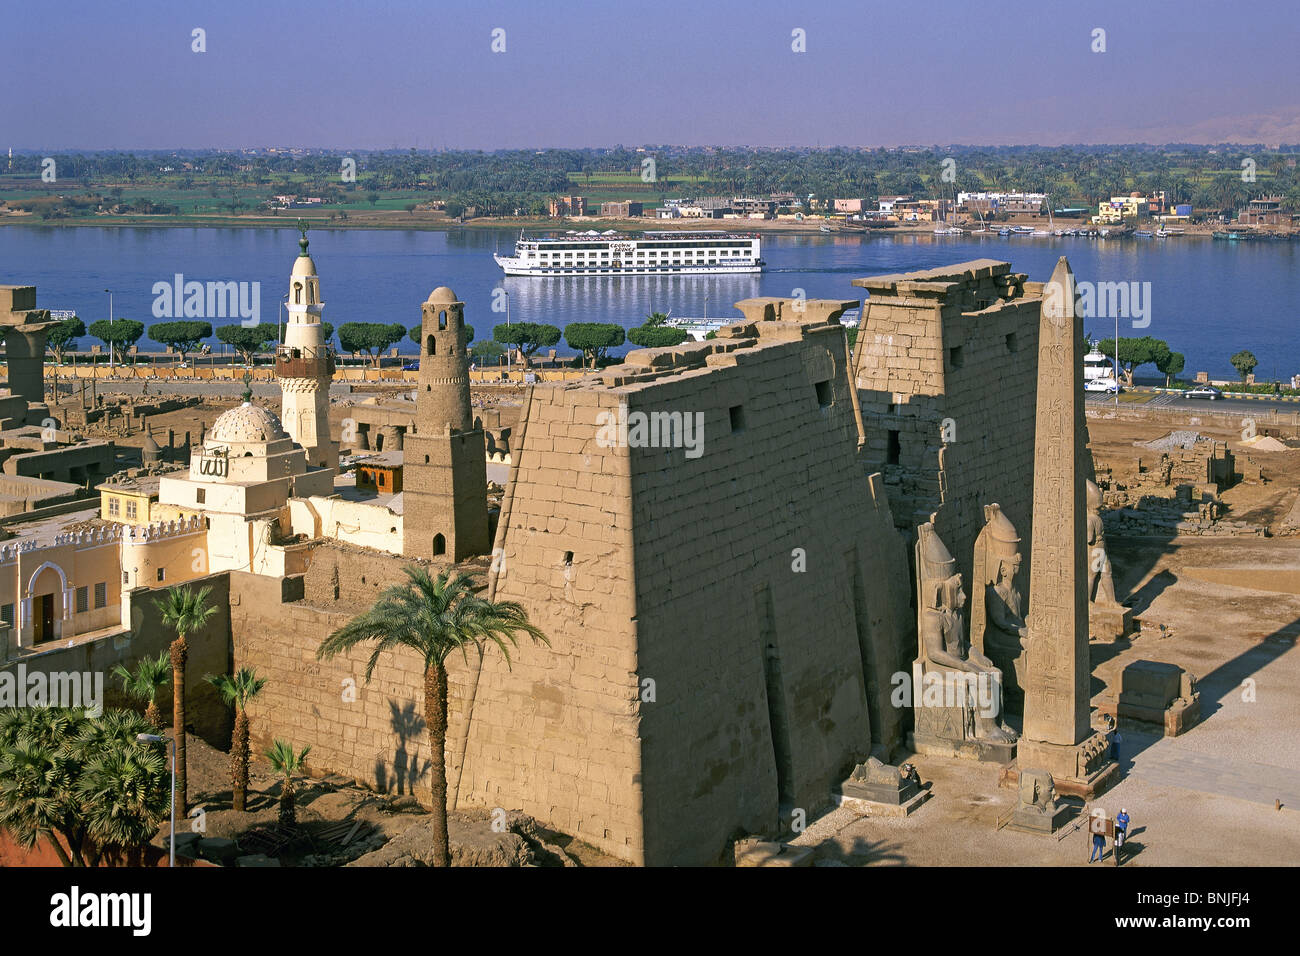 Egypt March 2007 Luxor city Luxor Temple Nile river ancient historic Stock Photo